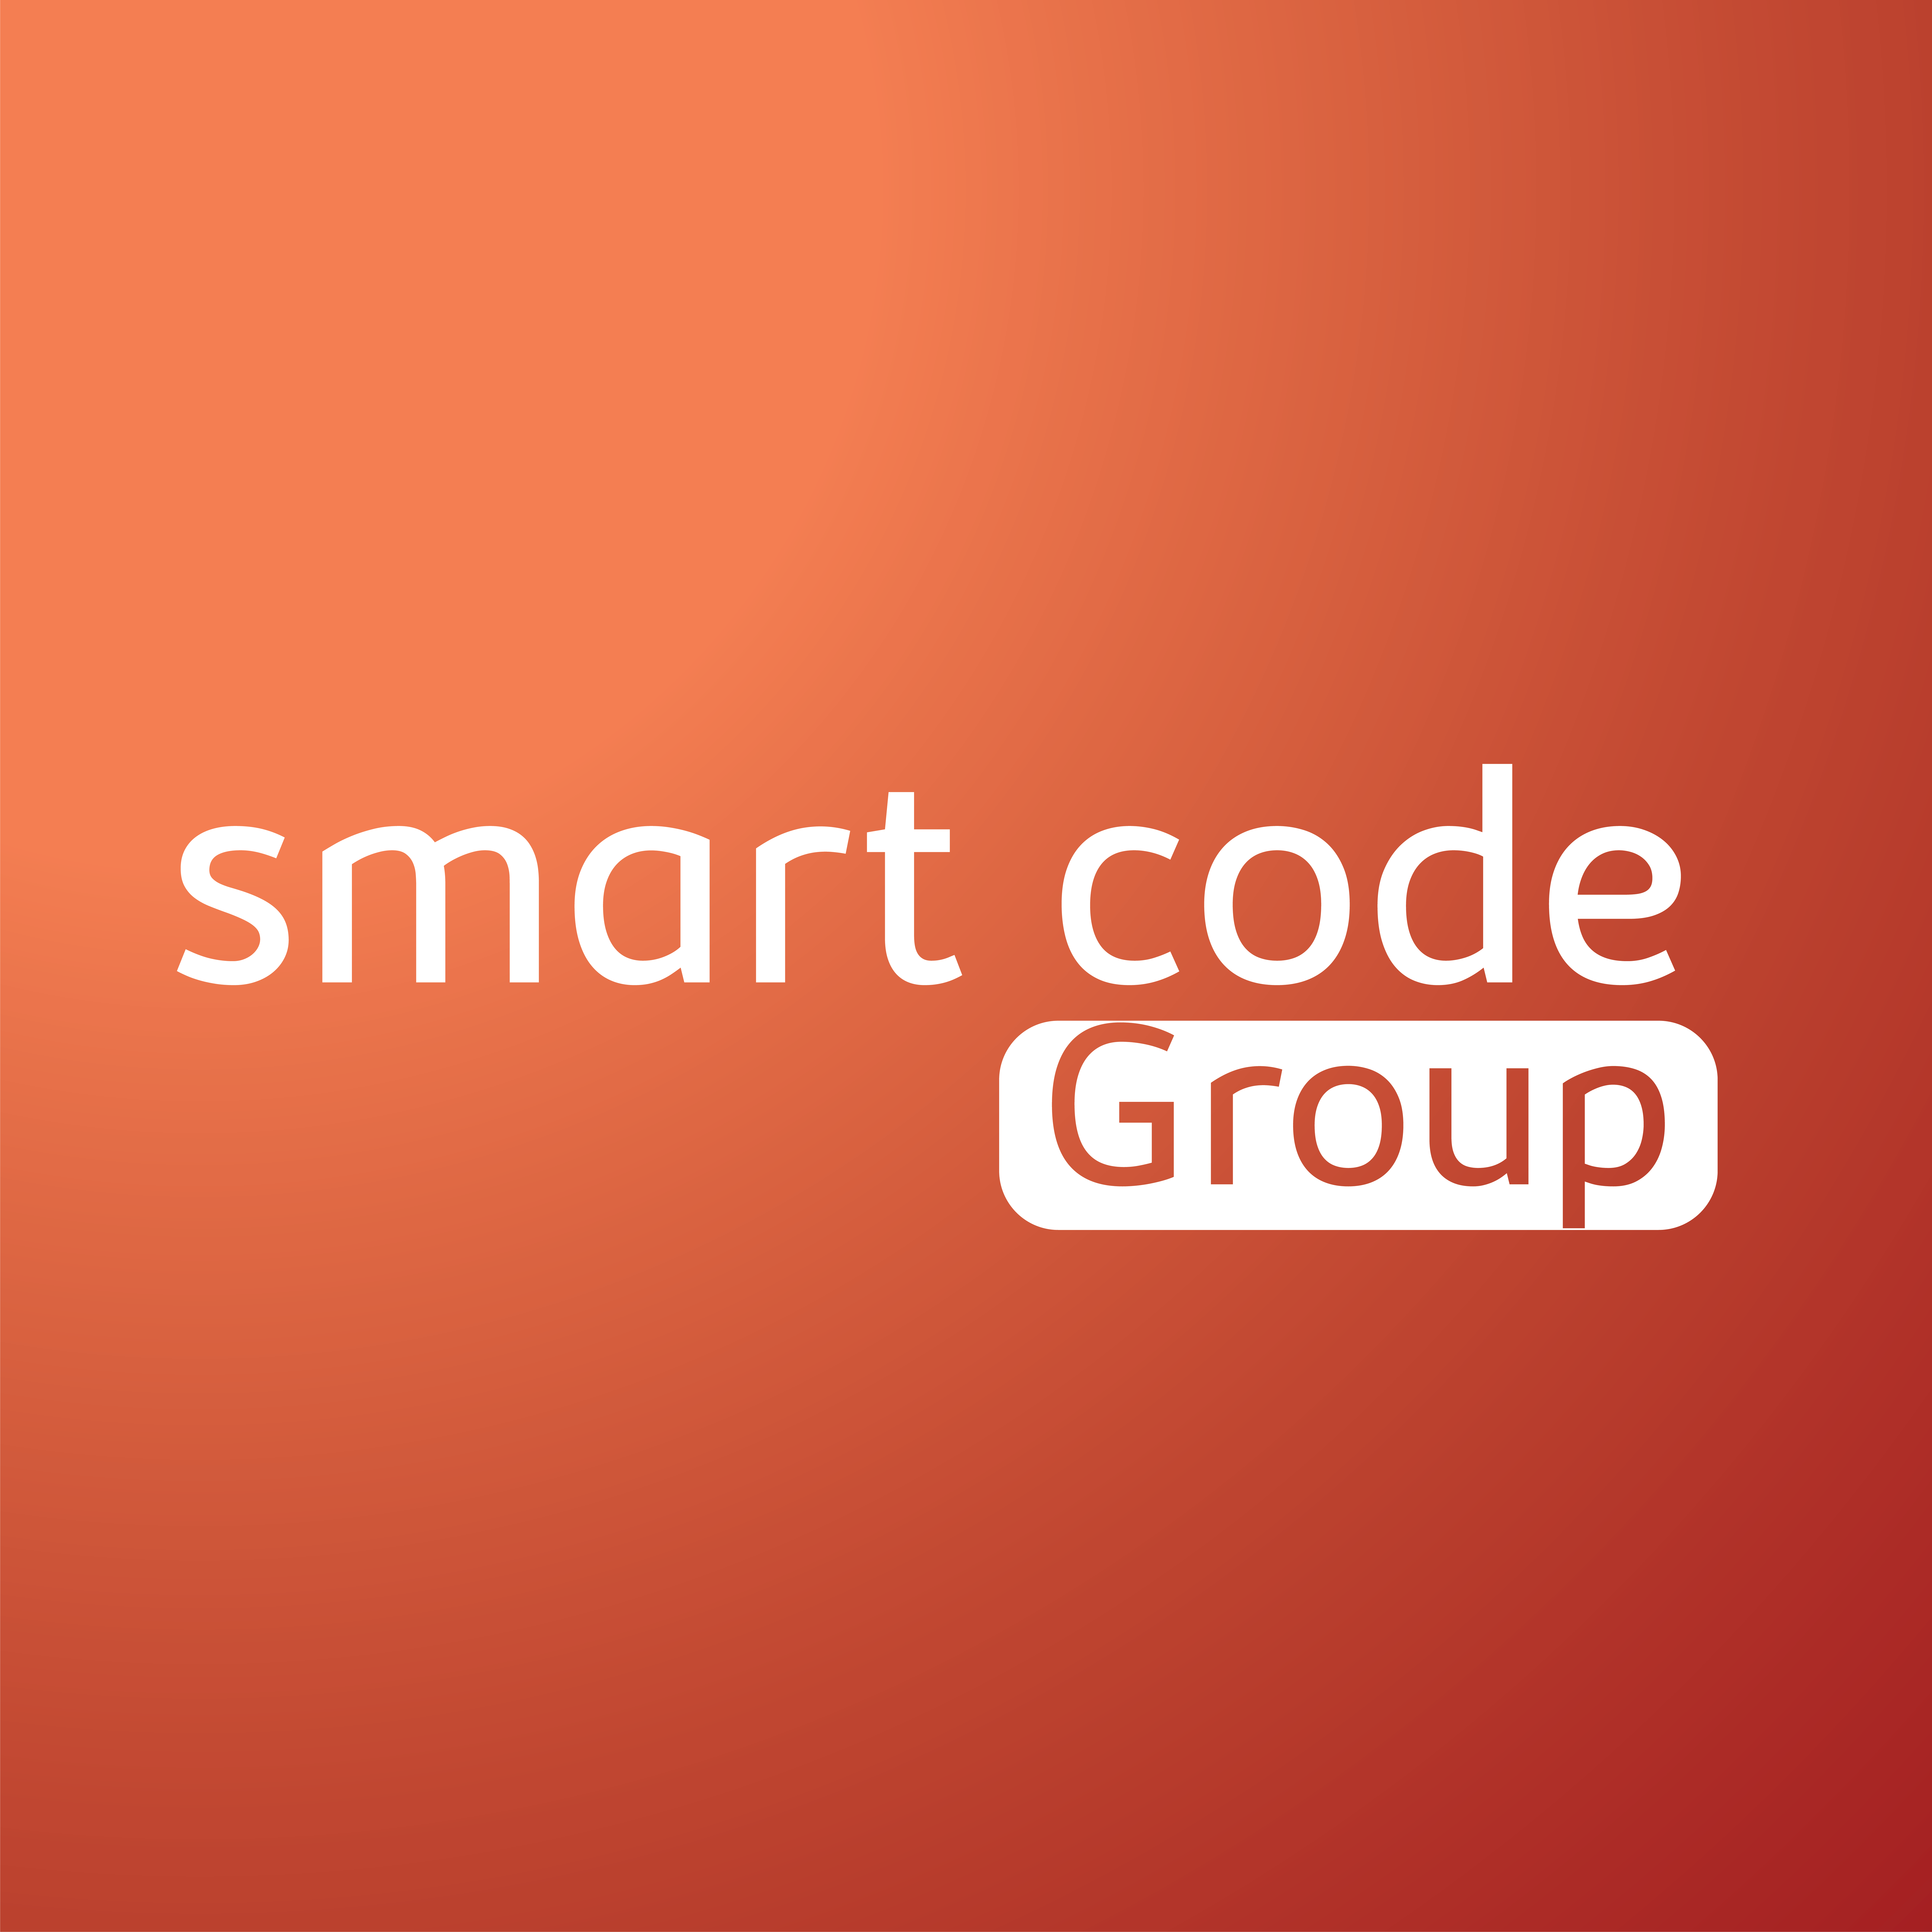 Logo de SMARTCODE Group